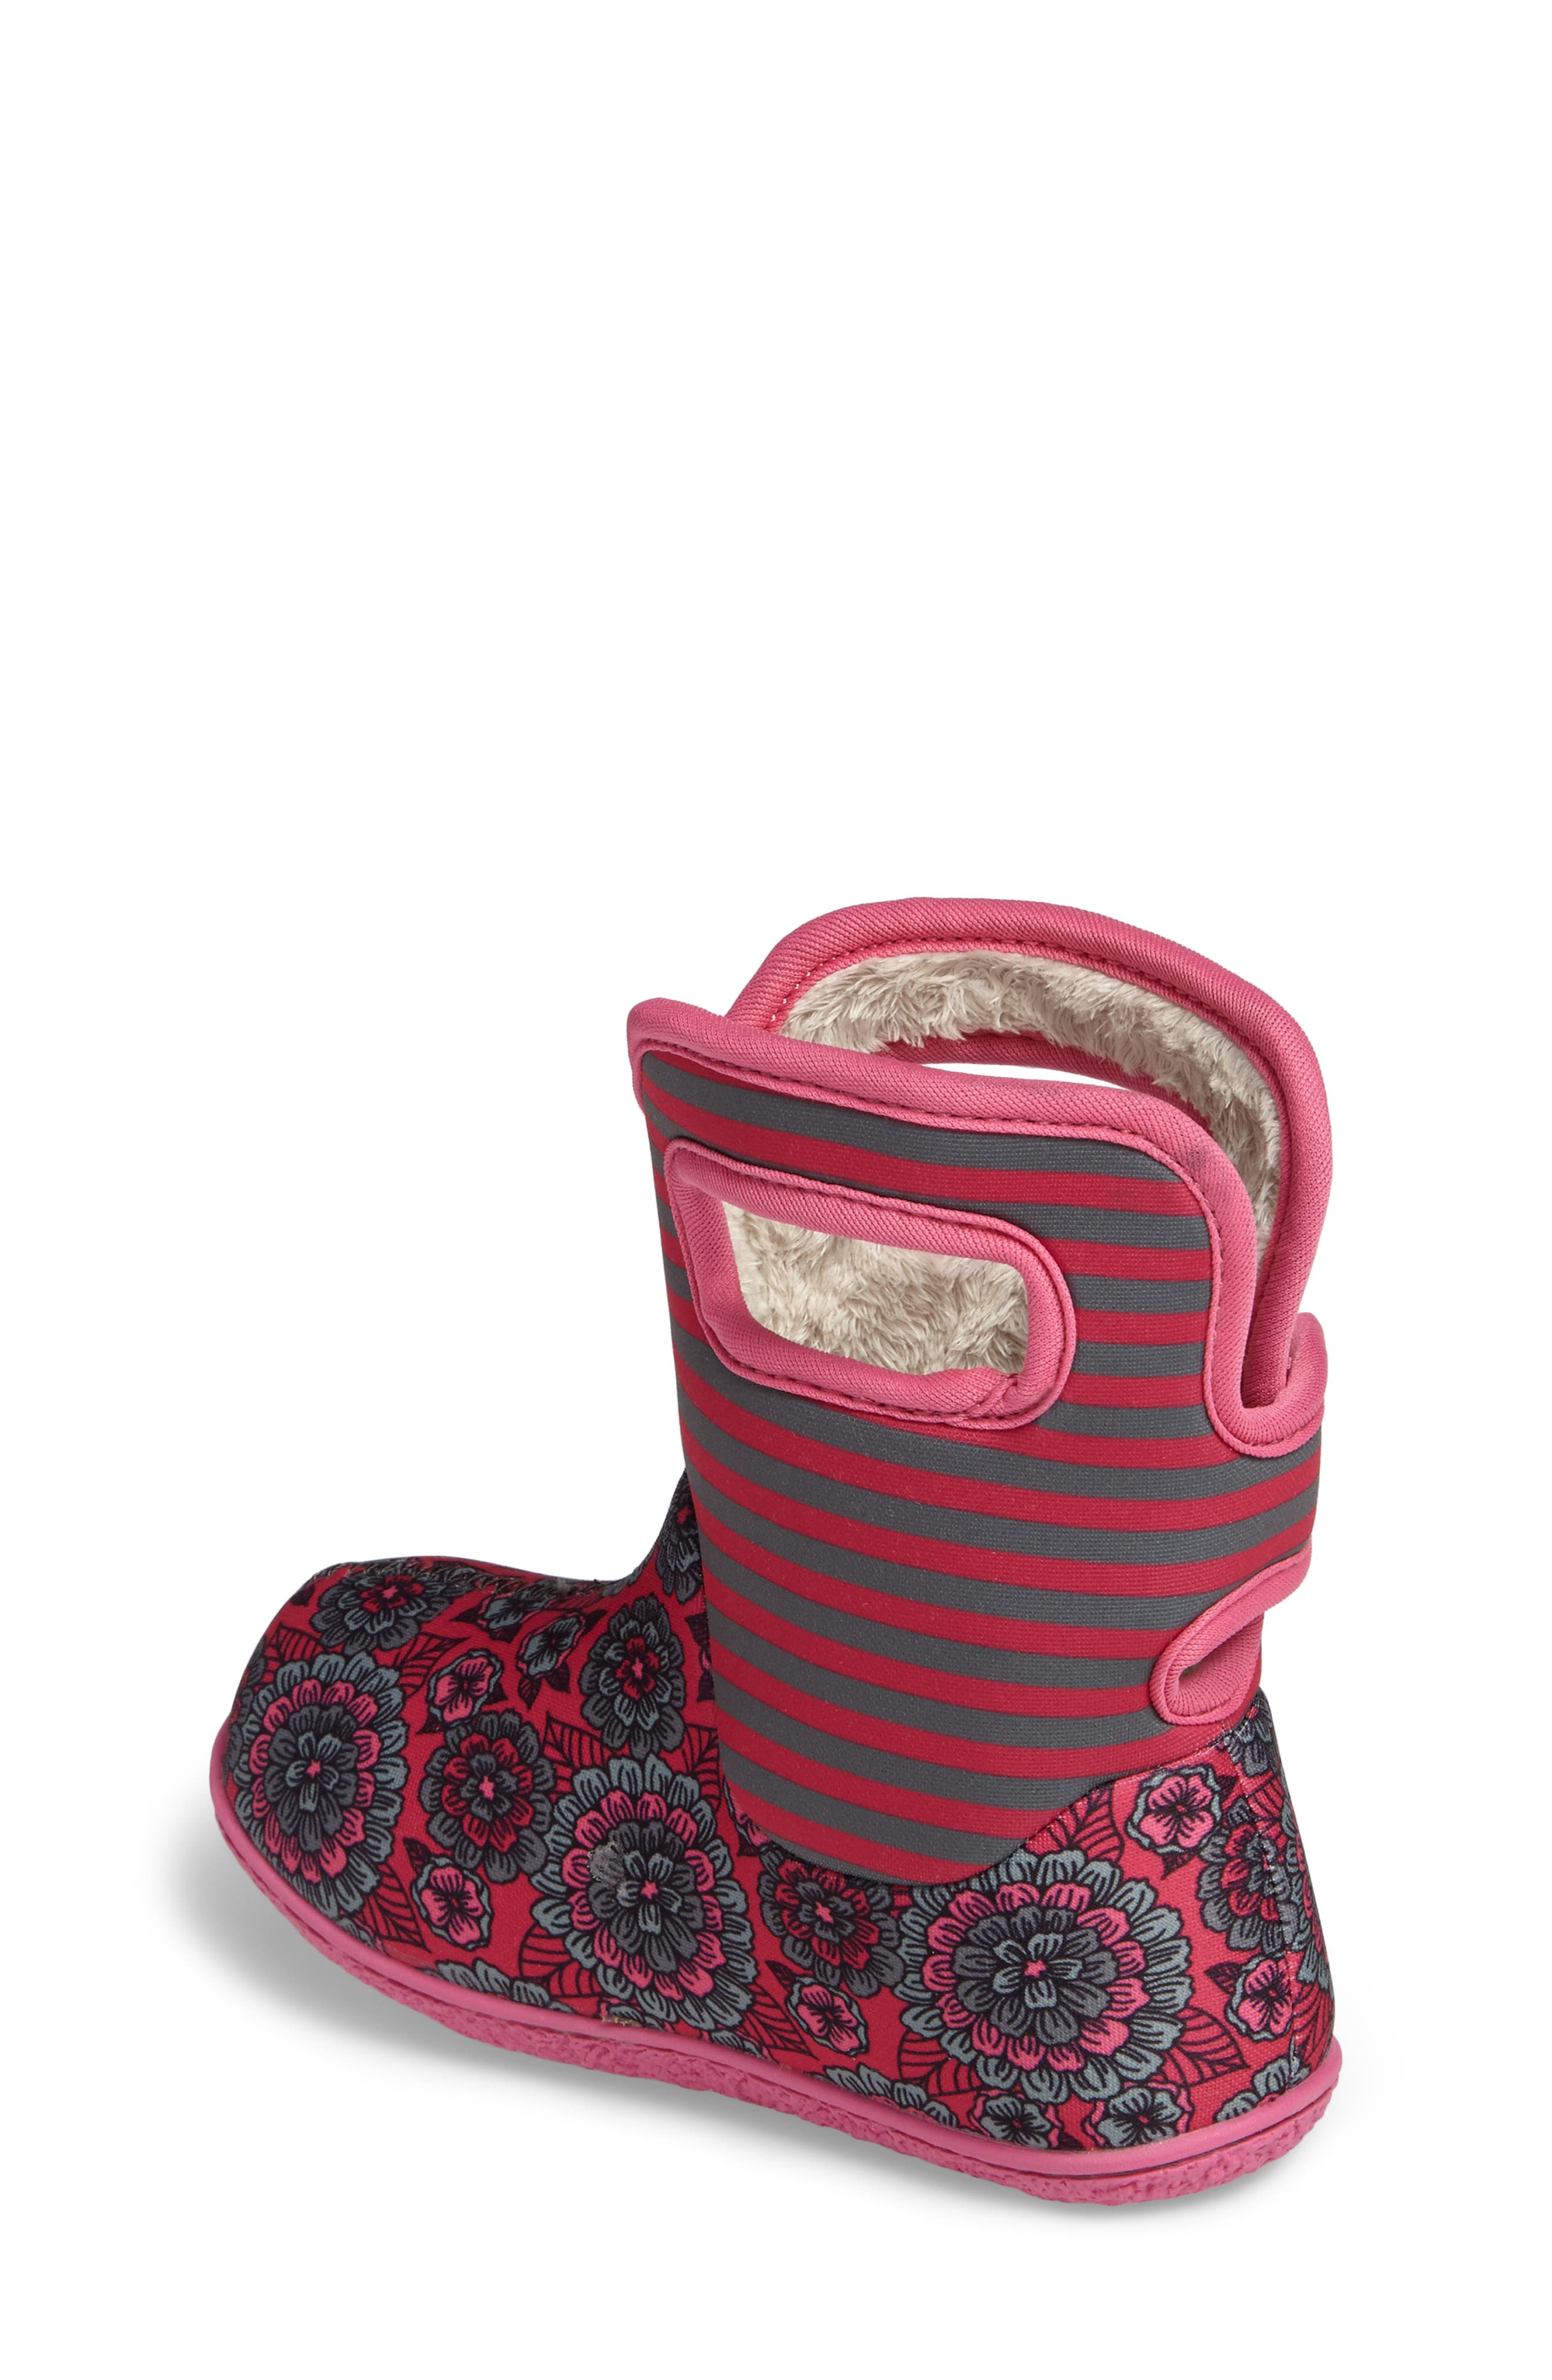 BOGS,                             Baby Bogs Pansy Stripe Insulated Waterproof Boot,                             Alternate thumbnail 2, color,                             650